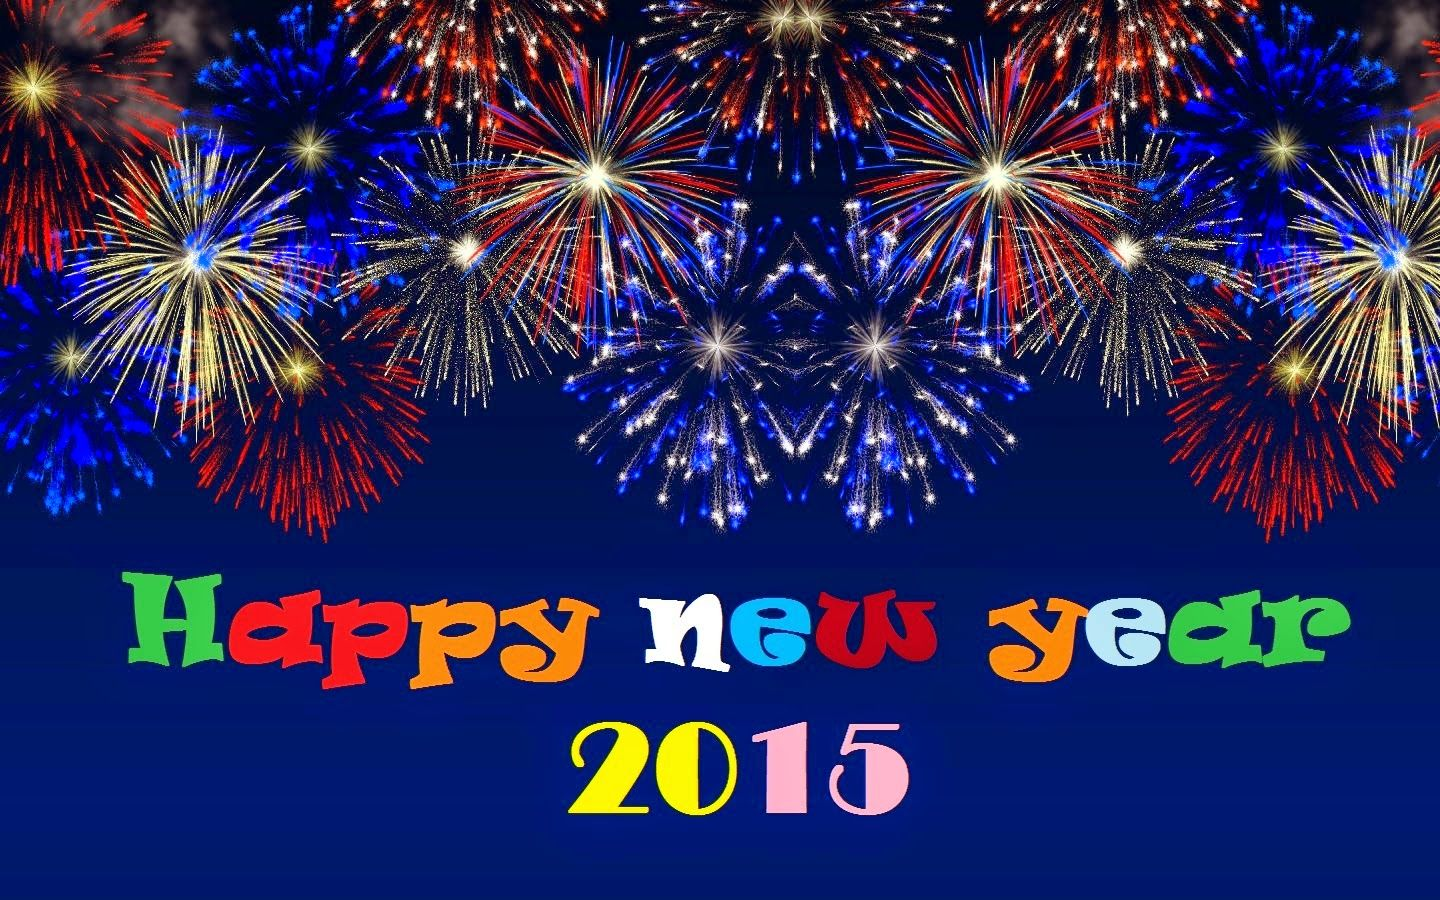 Free download happy new year photos wallpapers pics images free download happy new year photos wallpapers pics images pictures online m4hsunfo